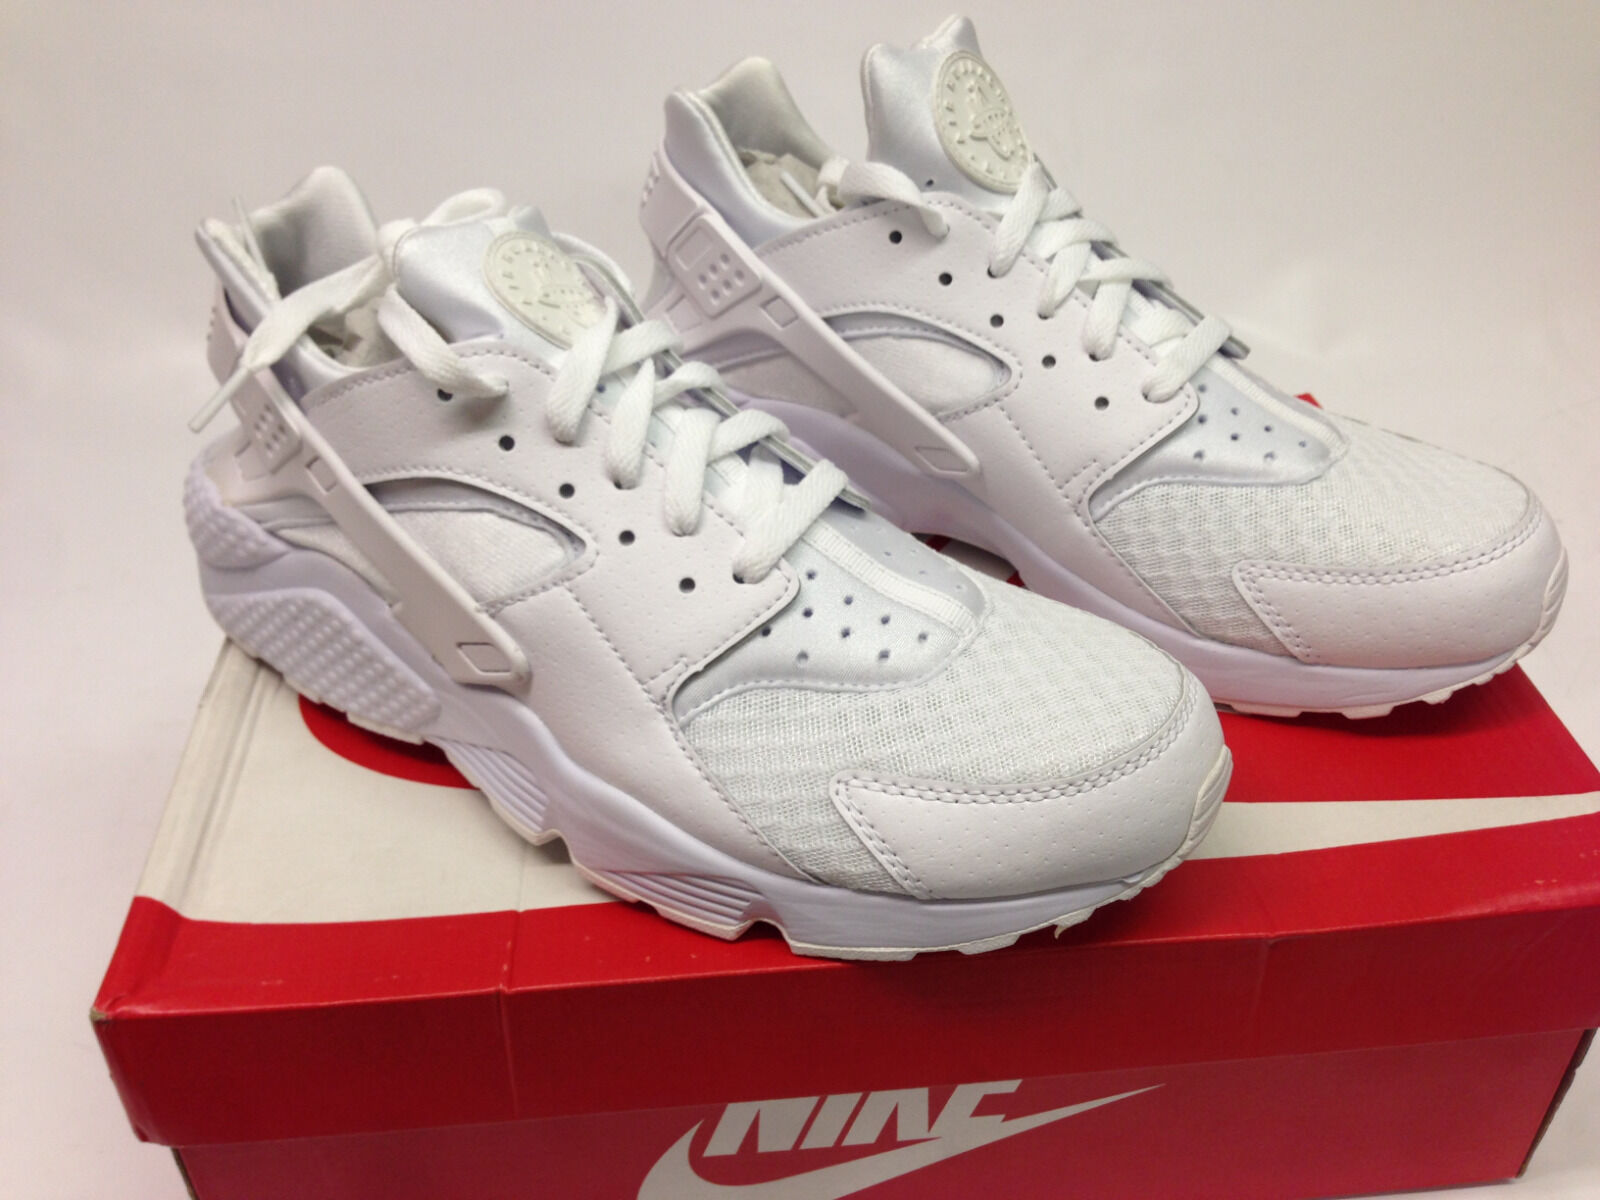 NEW Men's Nike Air Huarache Running shoes - Sizes 9  - 13 - White White White